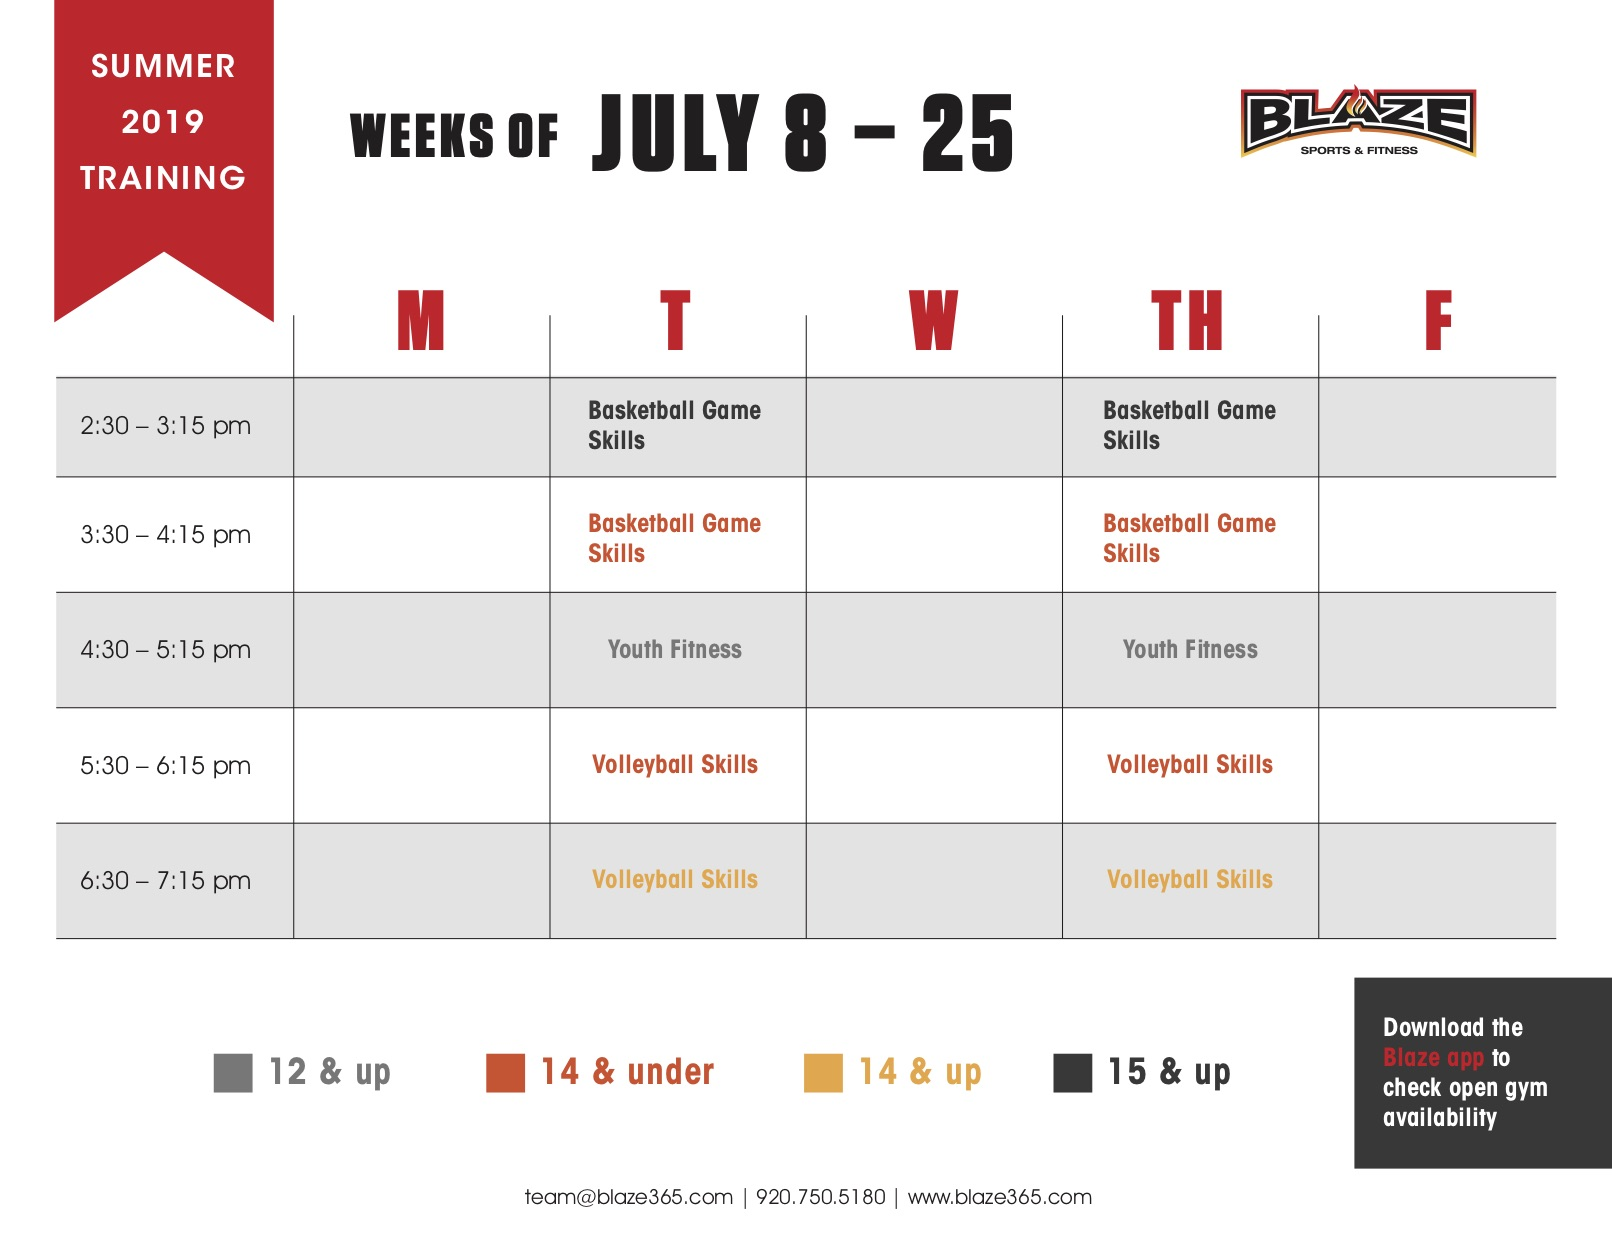 2019 Blaze Summer Training Schedule